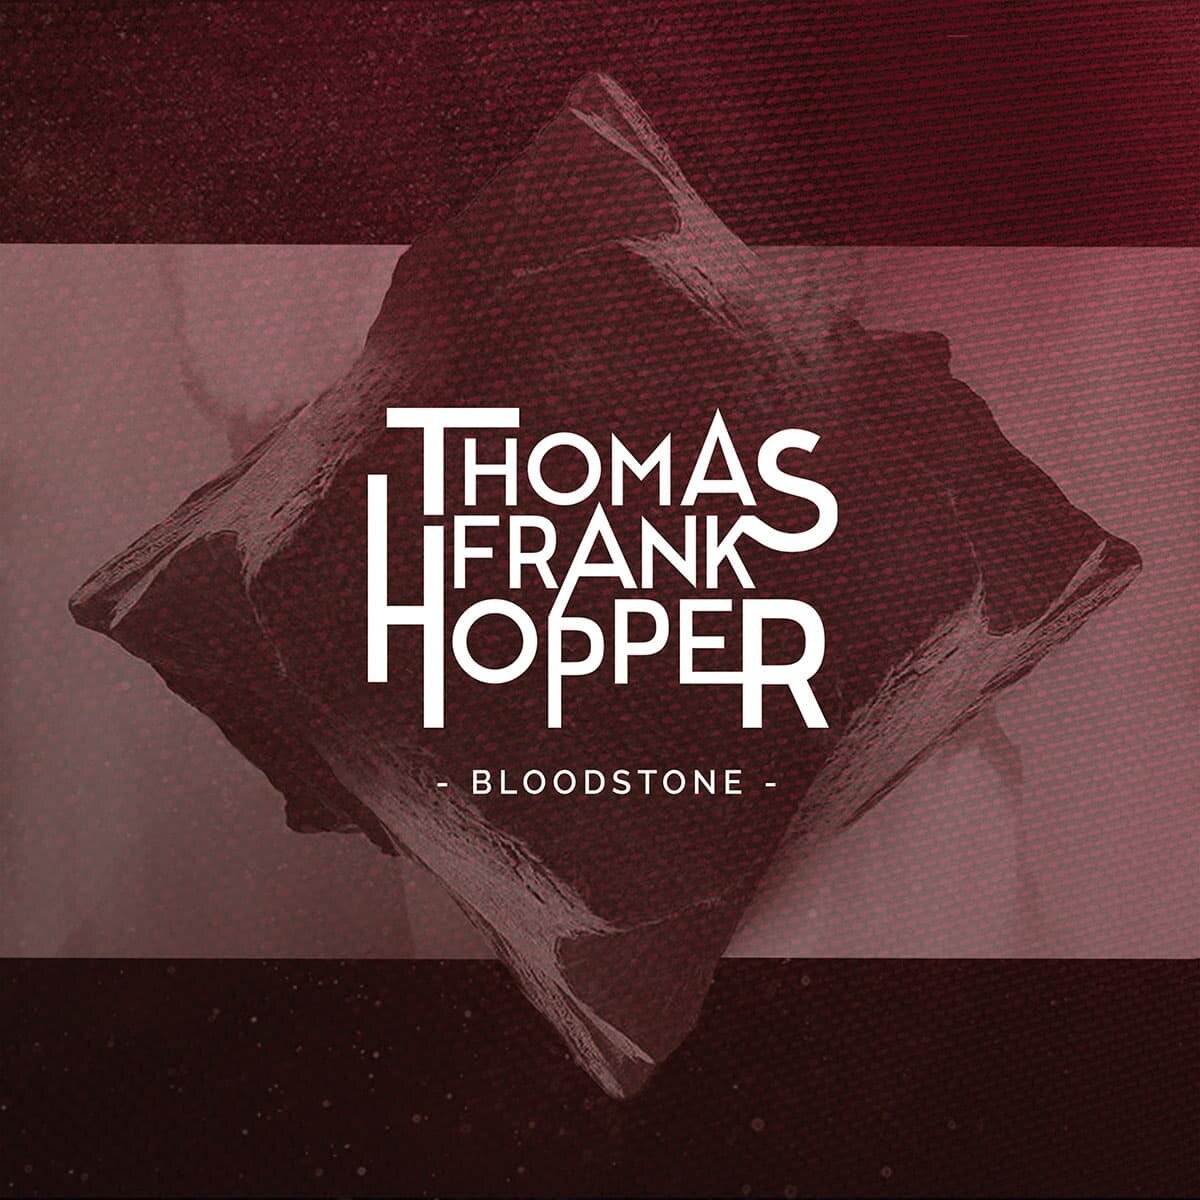 Thomas Frank Hopper - Bloodstone